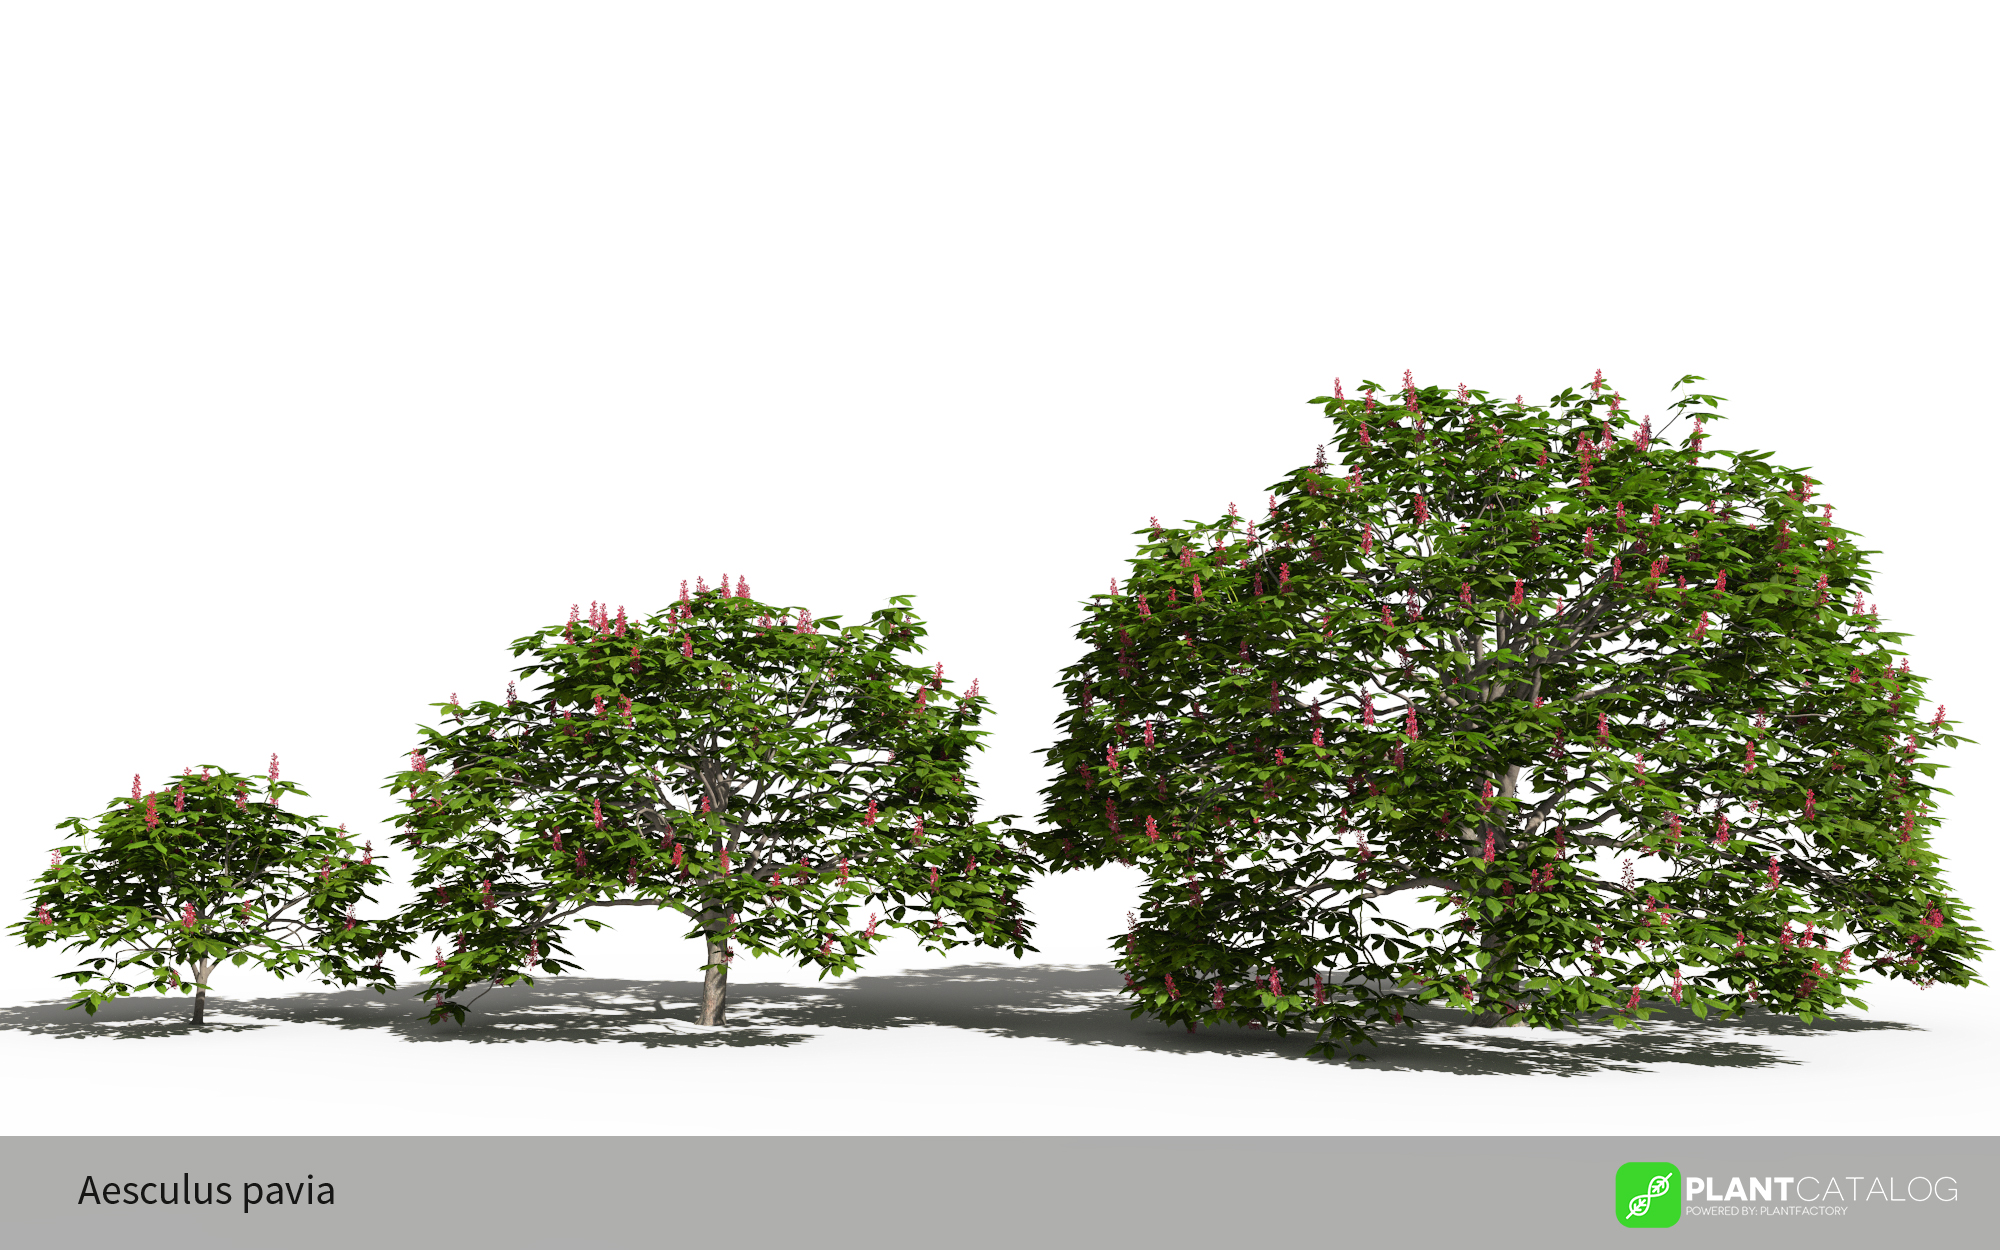 3D model of the Dwarf red horse chestnut - Aesculus pavia - from the PlantCatalog, rendered in VUE